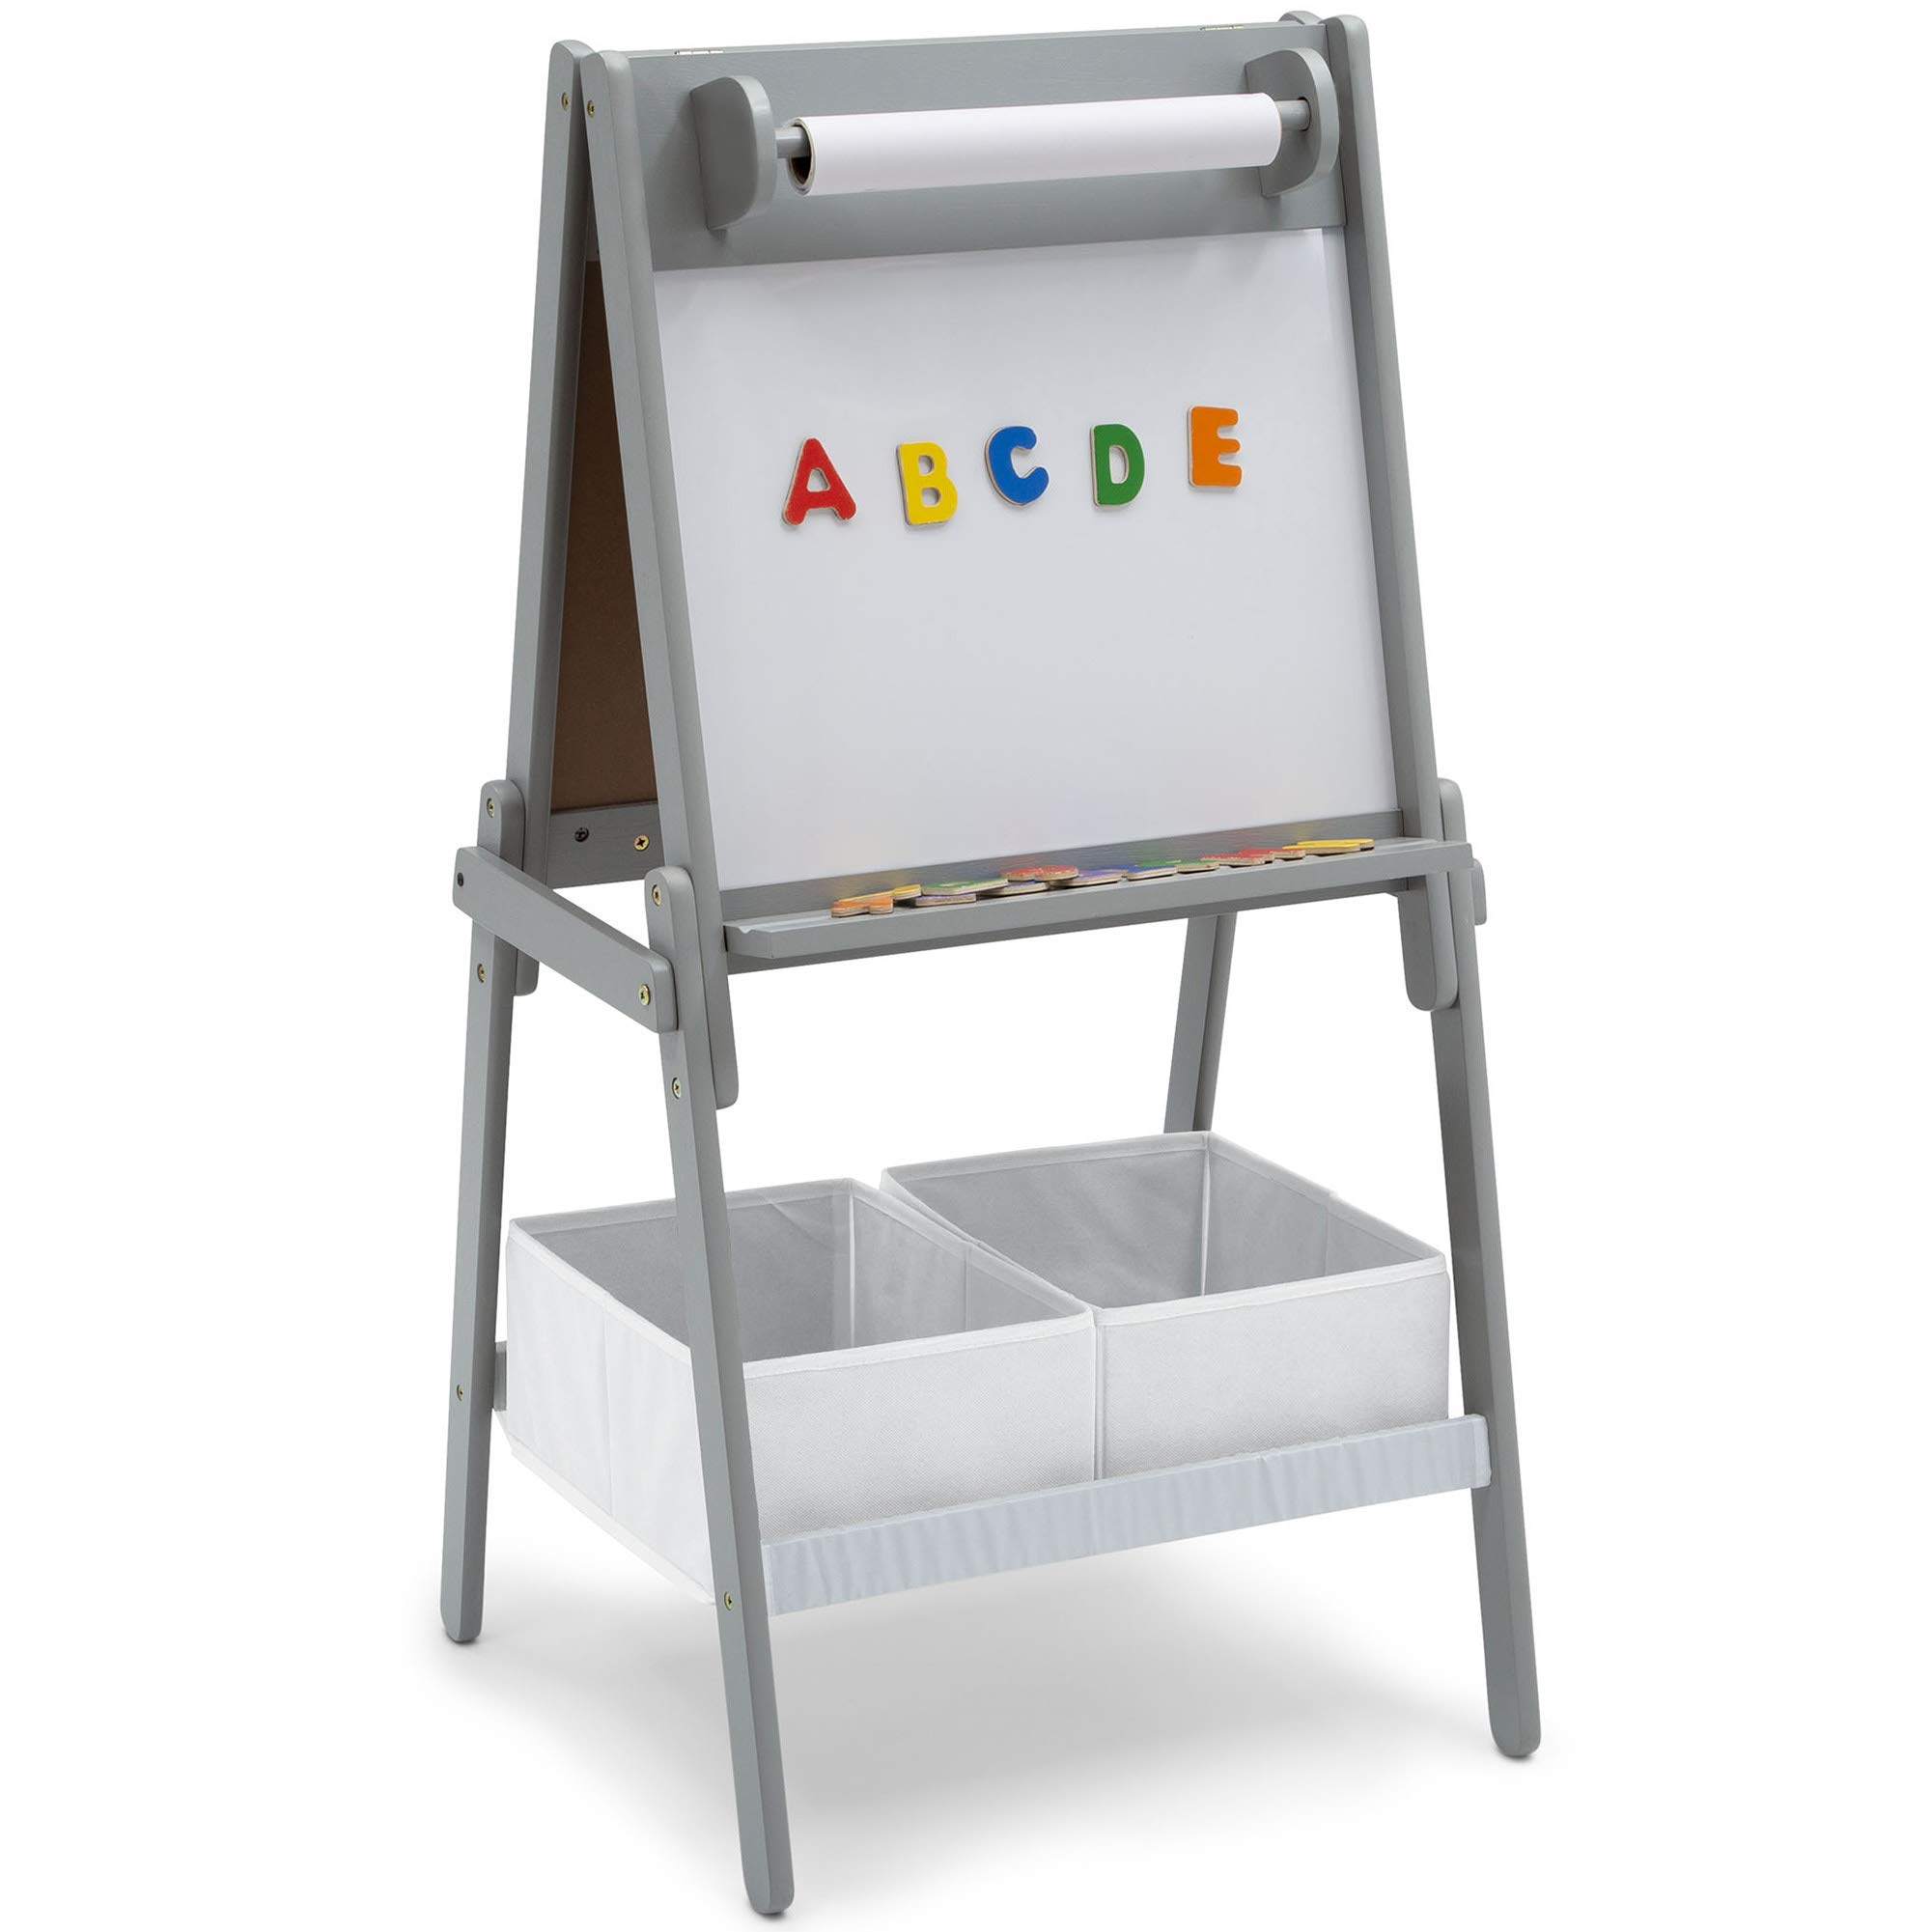 Delta Children Chelsea Double-Sided Storage Easel with Paper Roll and Magnets | Dry Erase Surface & Chalkboard Surface, Light Grey/White, Light Grey/White